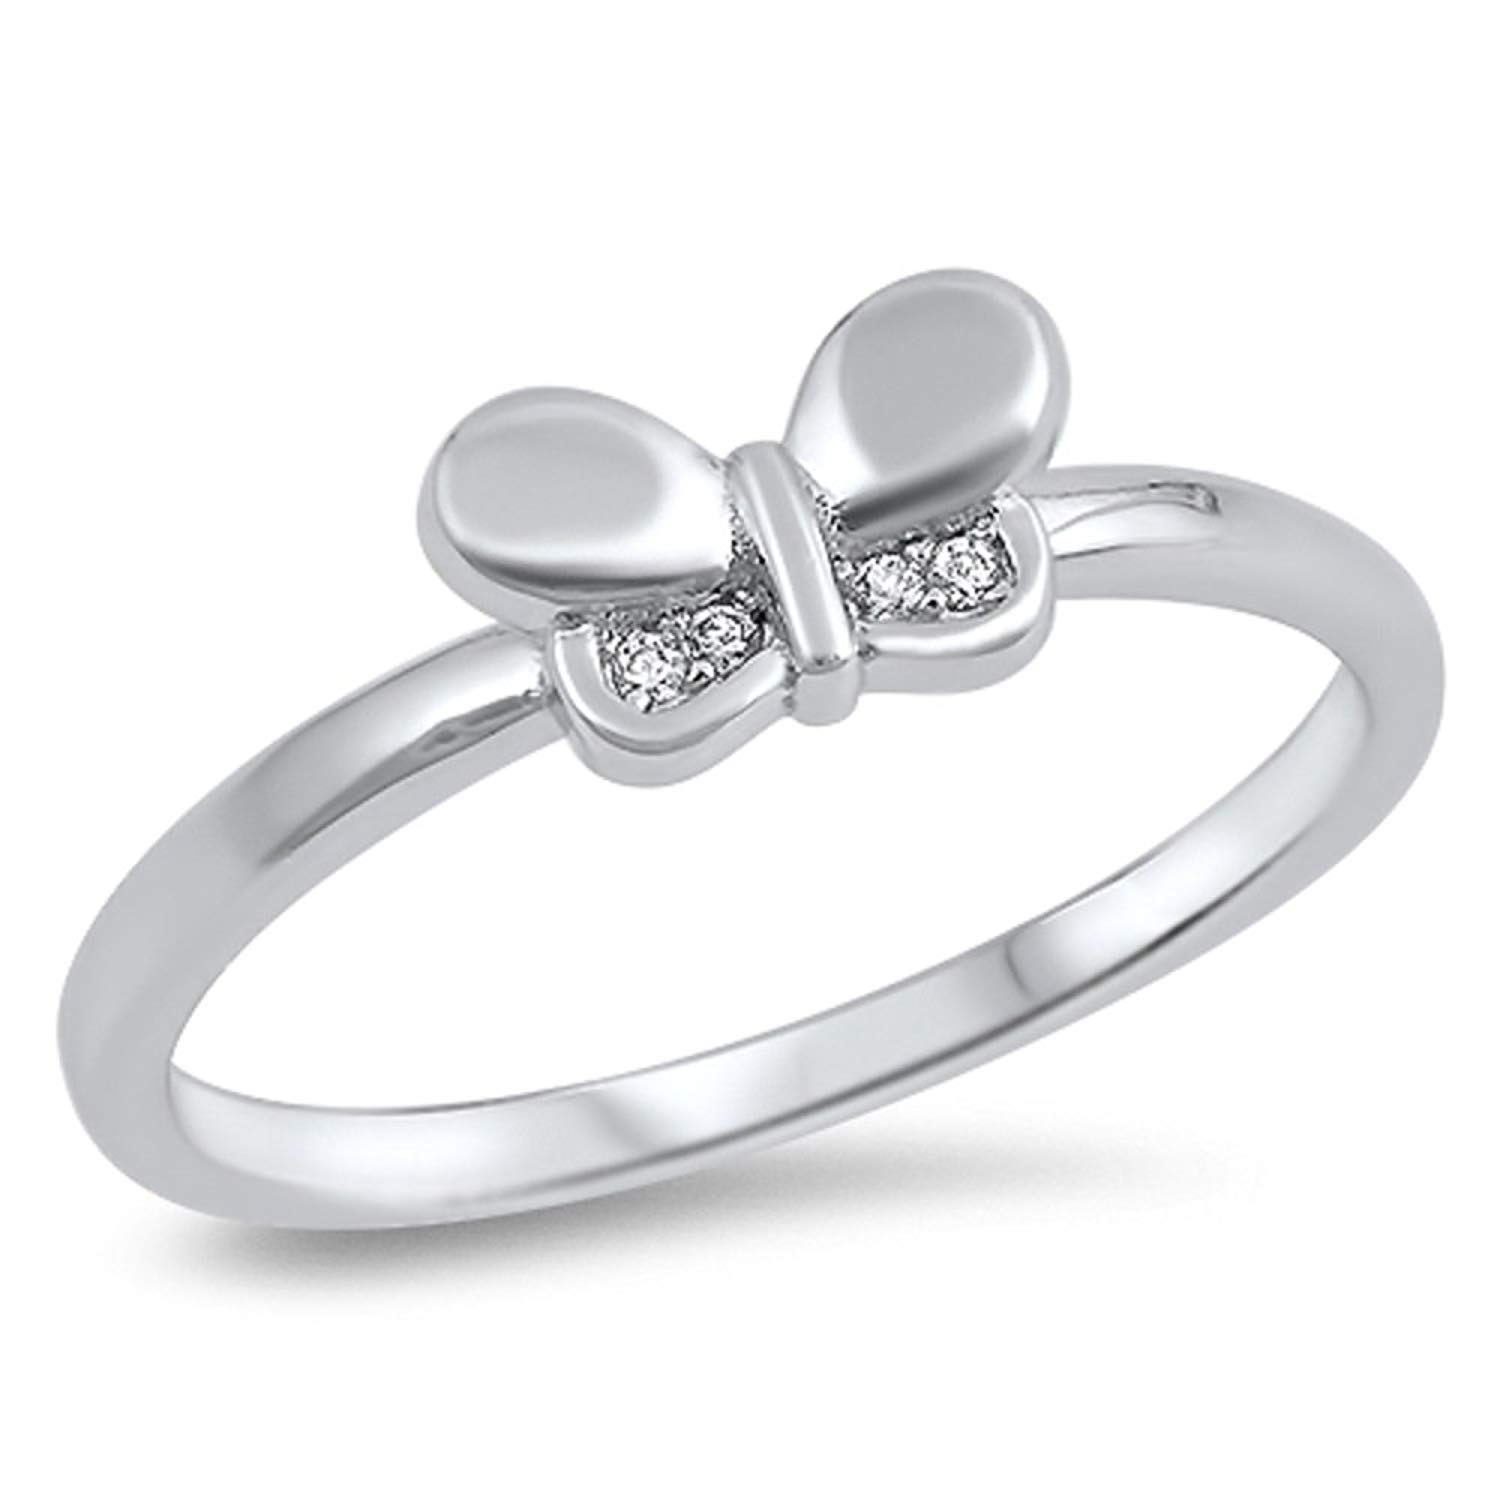 CloseoutWarehouse Simulated Sapphire Cubic Zirconia Double Band Flower Ring Sterling Silver